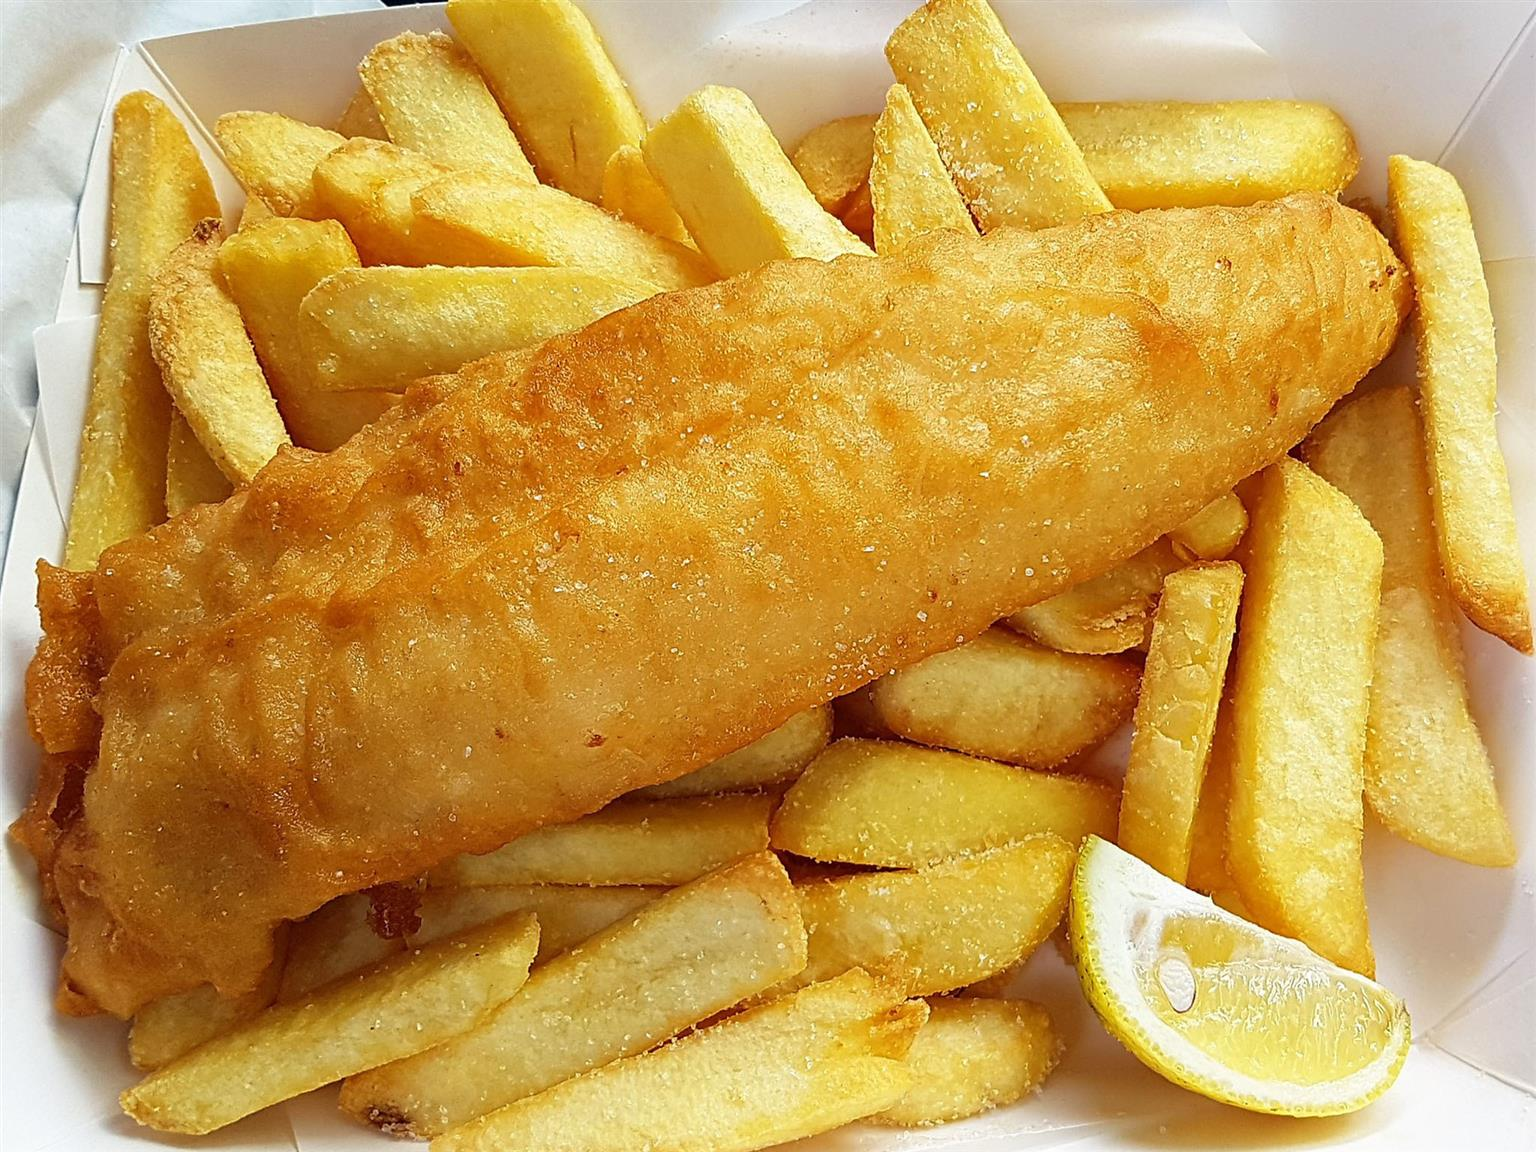 Fish & Chips (Brakpan)